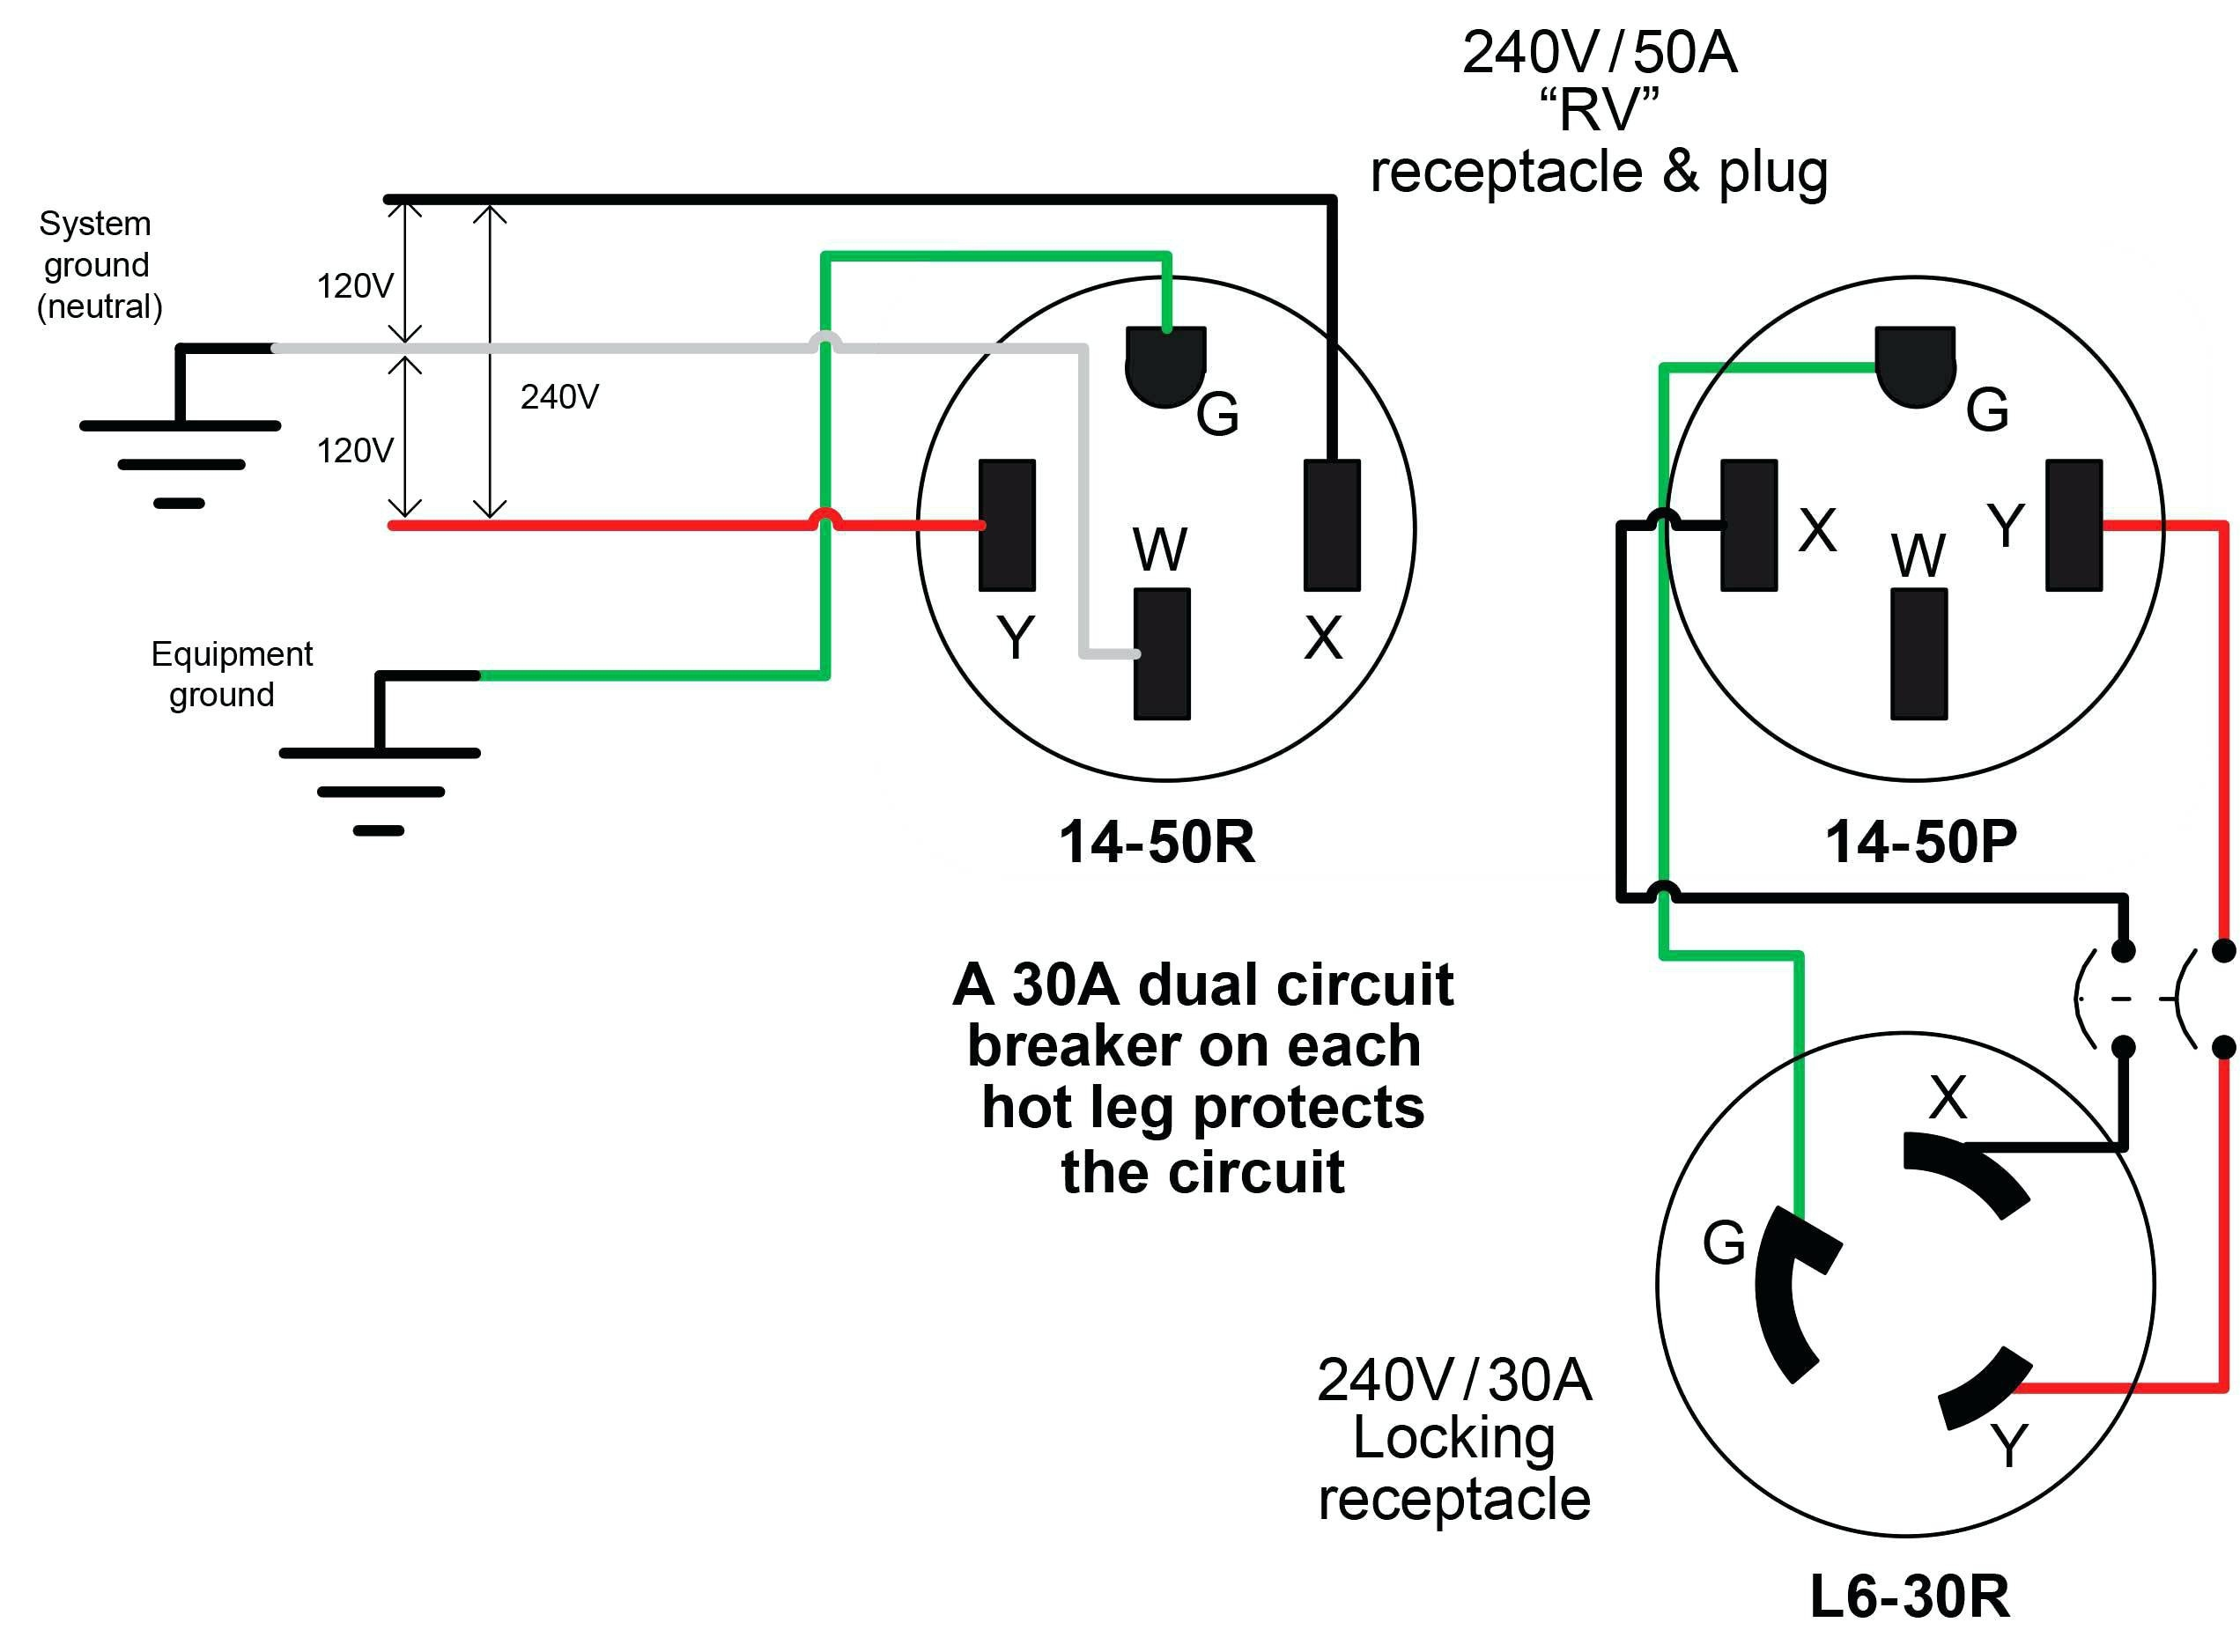 l21 30r wiring diagram | free wiring diagram nema l5 30 wiring diagram nema l6 30 wiring diagram